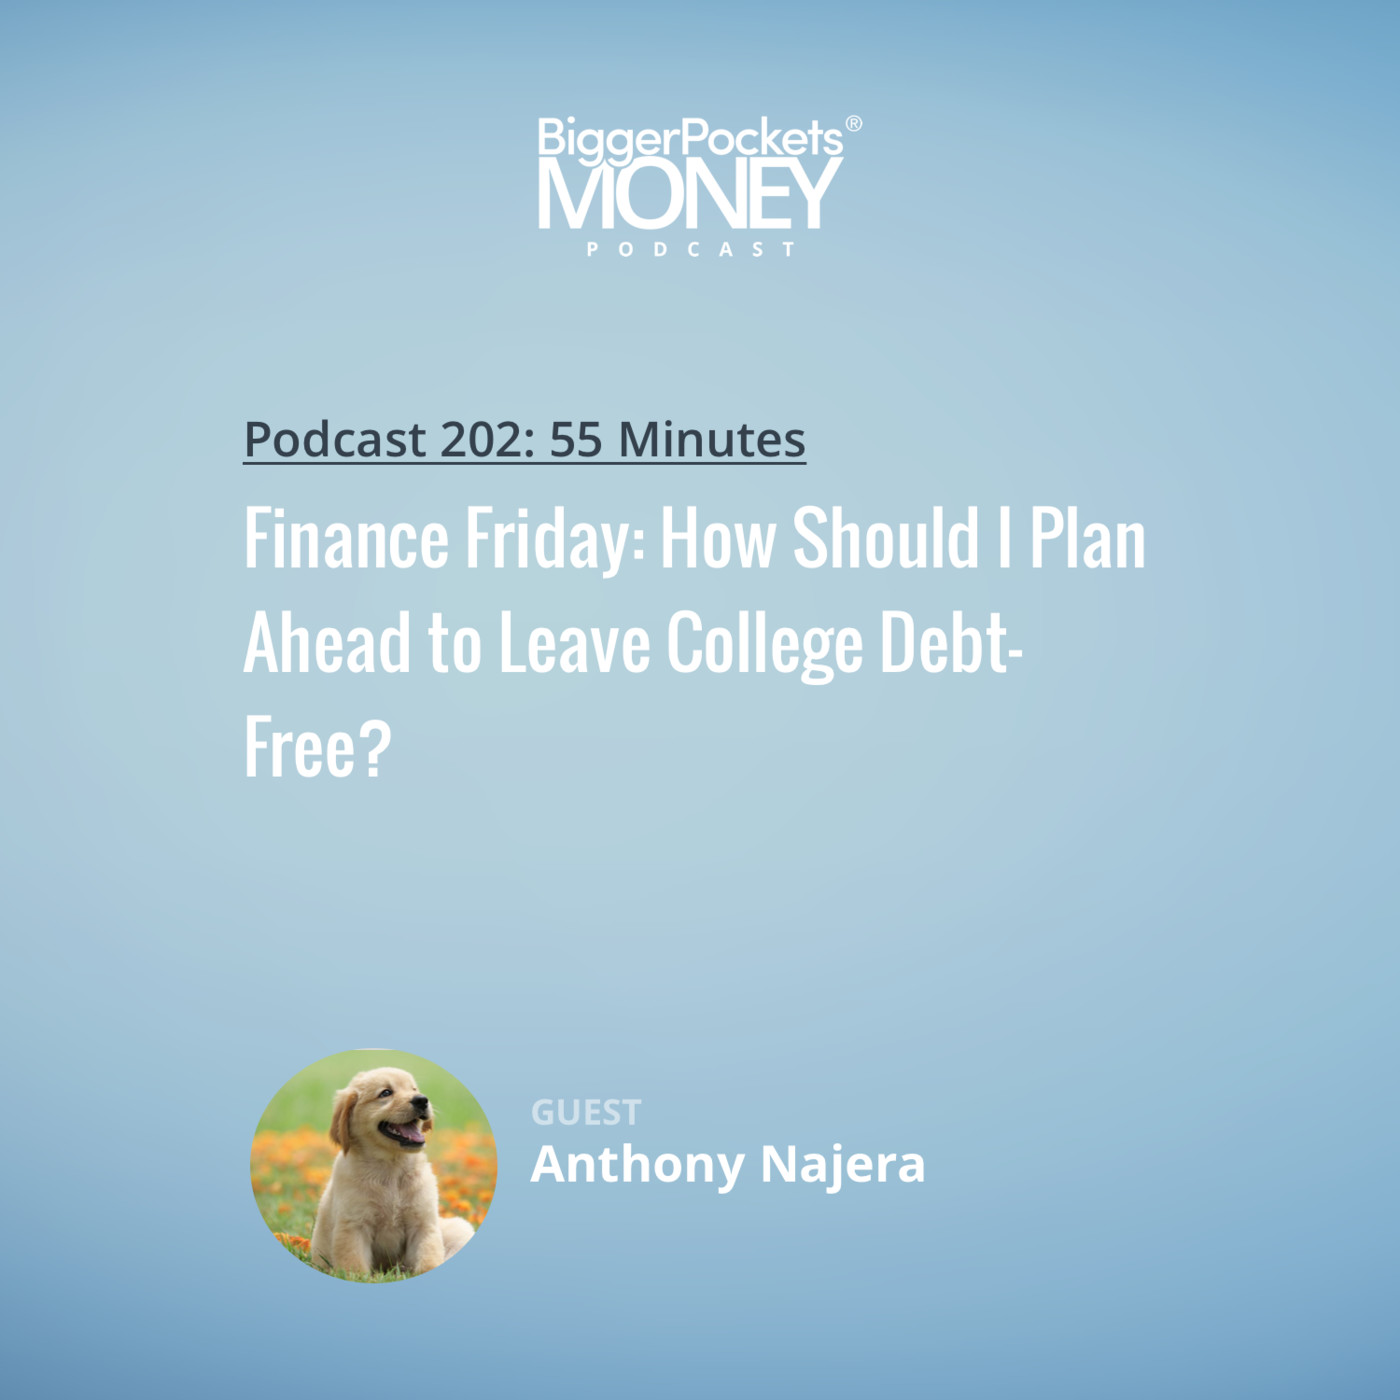 202: Finance Friday: How Should I Plan Ahead to Leave College Debt-Free?